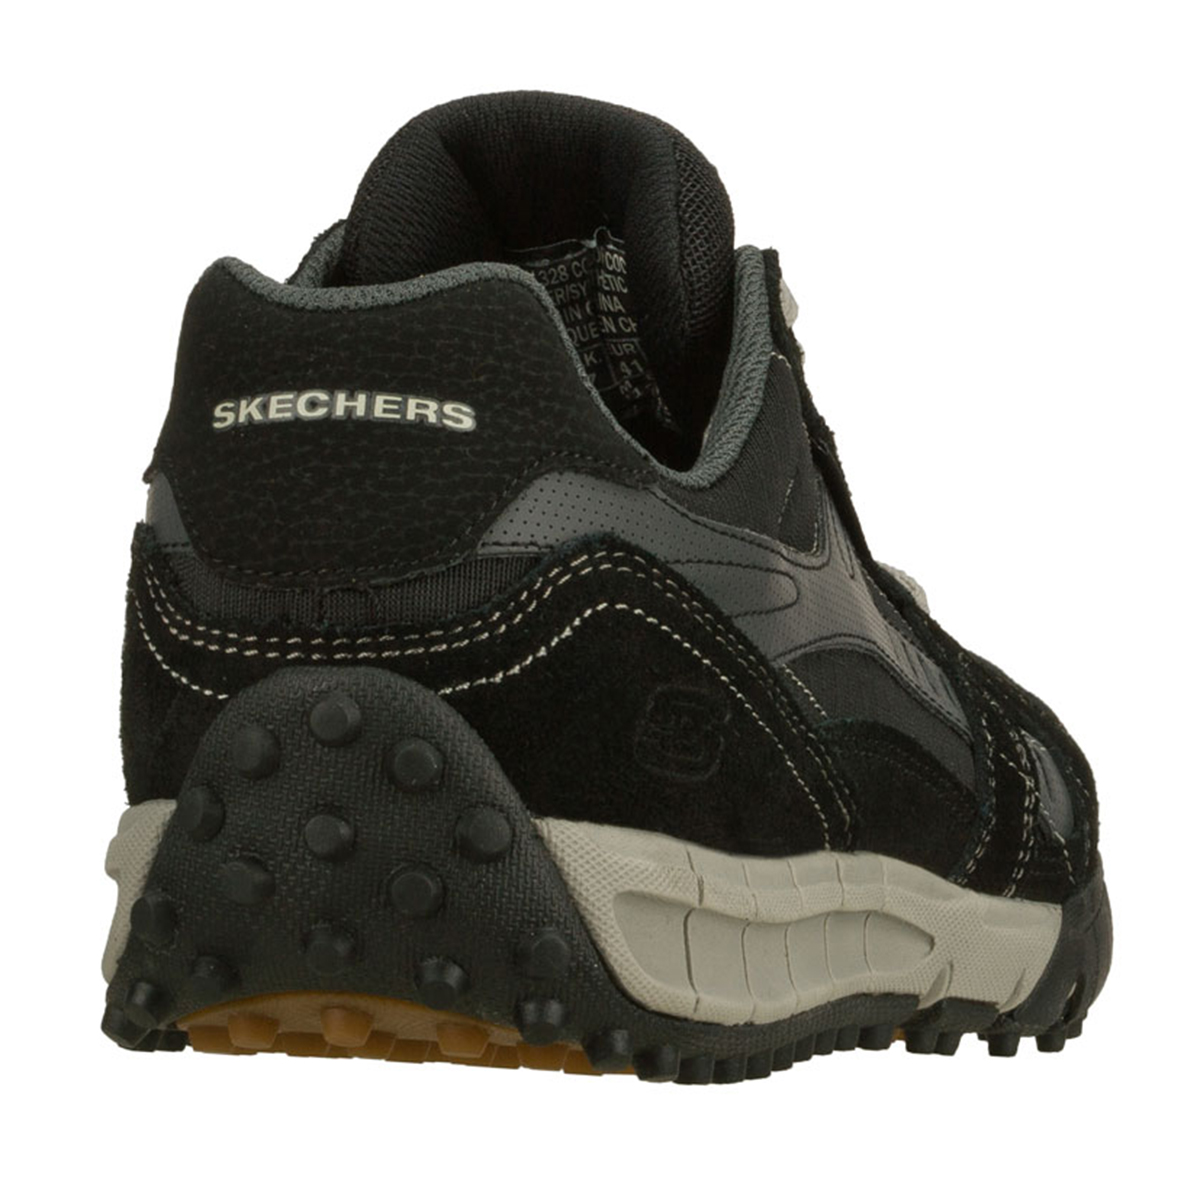 skechers mens shoes with memory foam